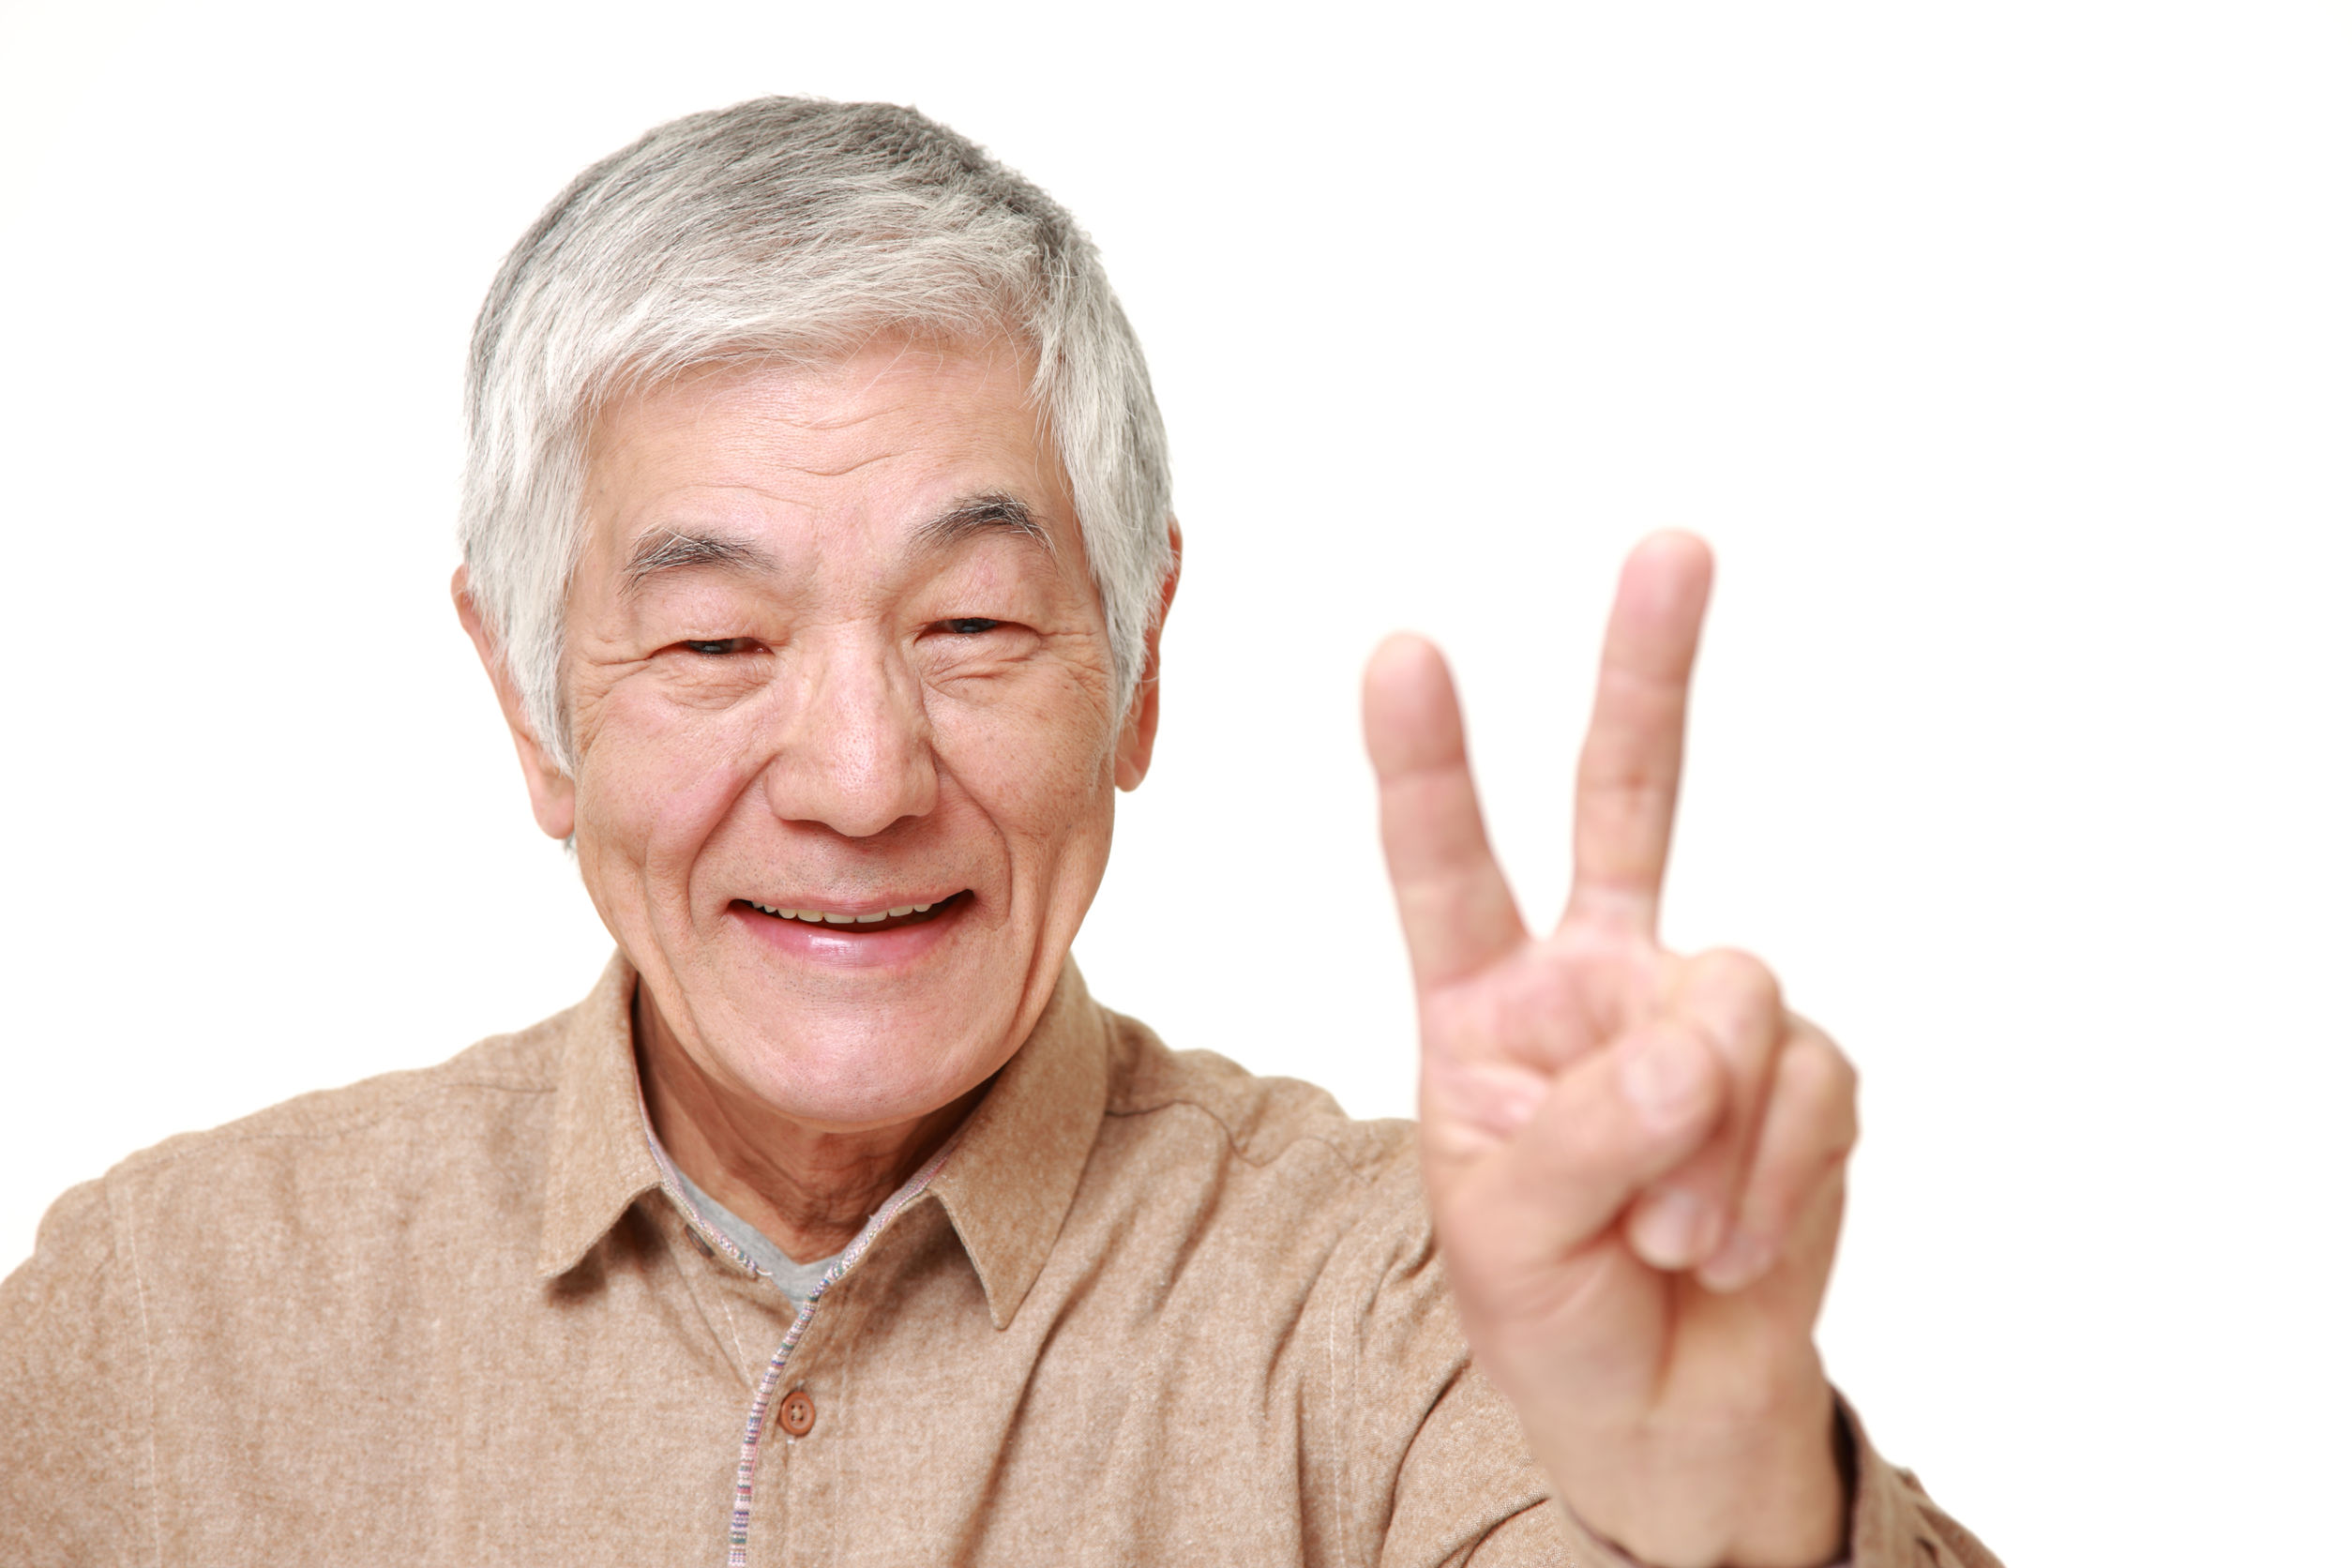 36869533 - senior japanese man showing a victory sign